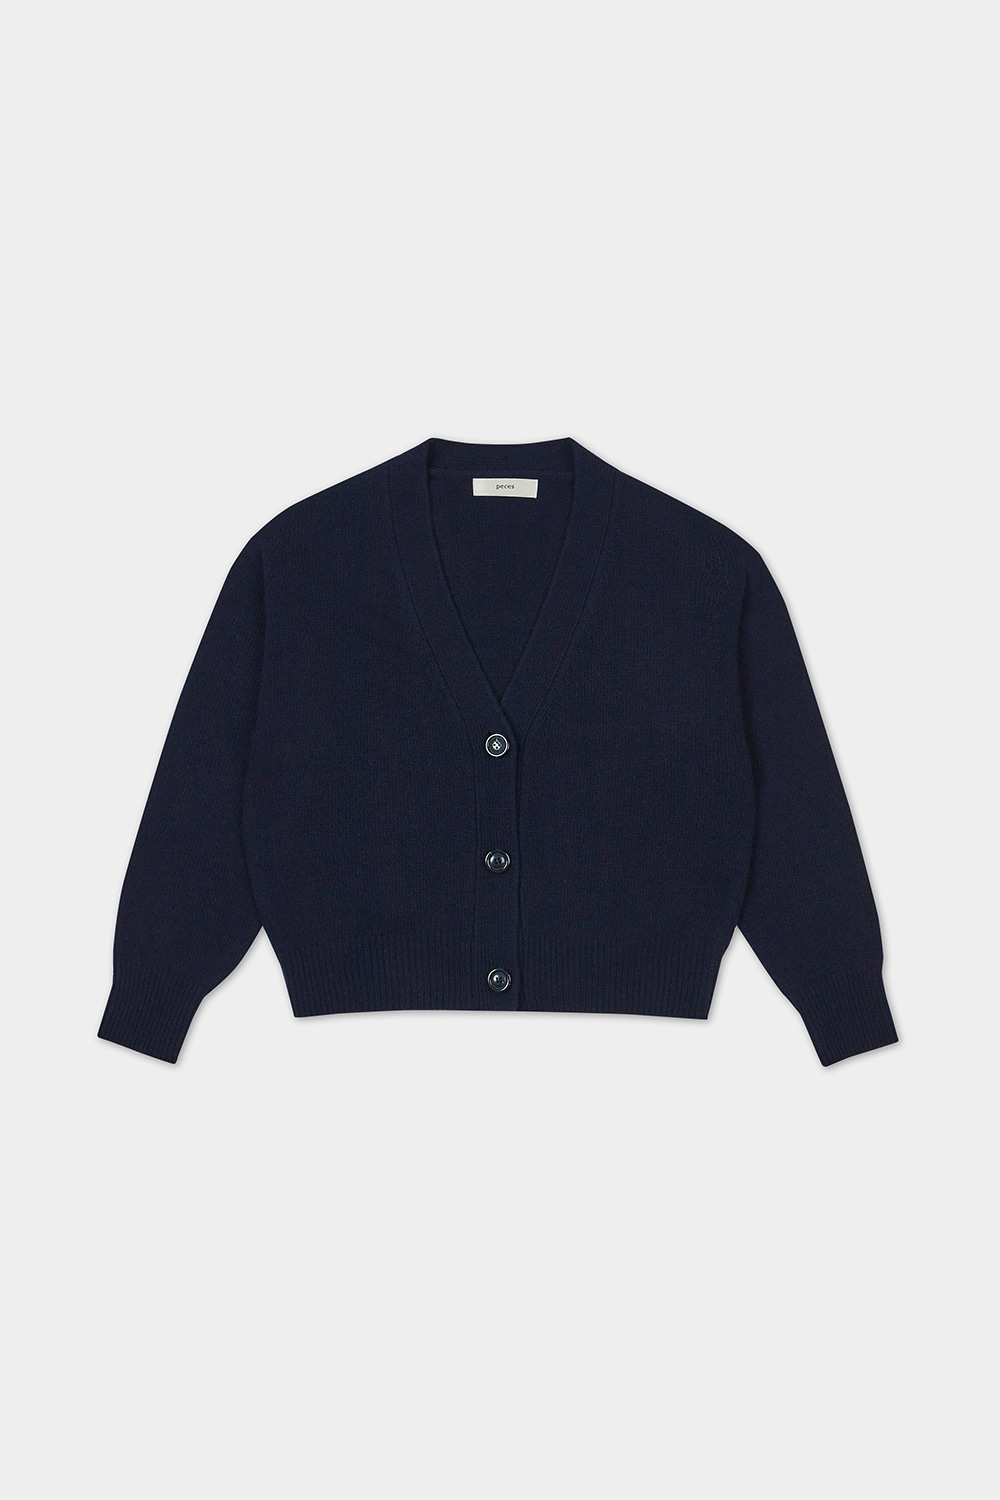 CASHMERE BLENDED CARDIGAN (NAVY)